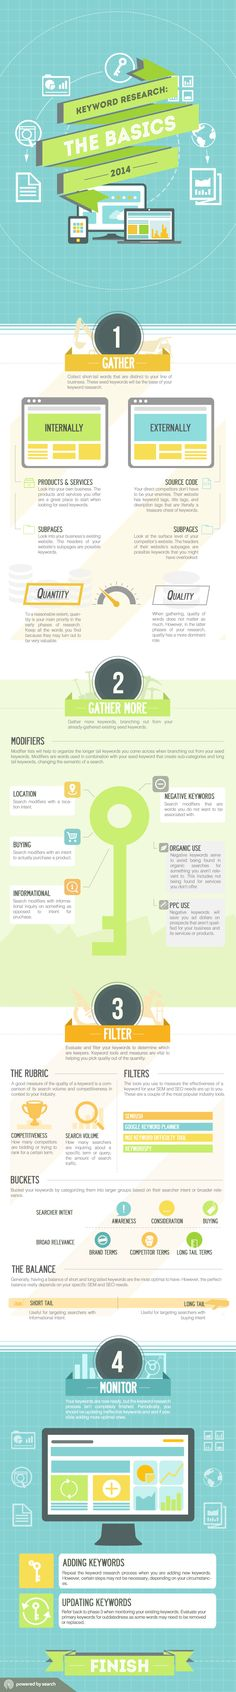 Keyword Research Infographic Keyword Research: The Basics (Infographic) #marketing #seo